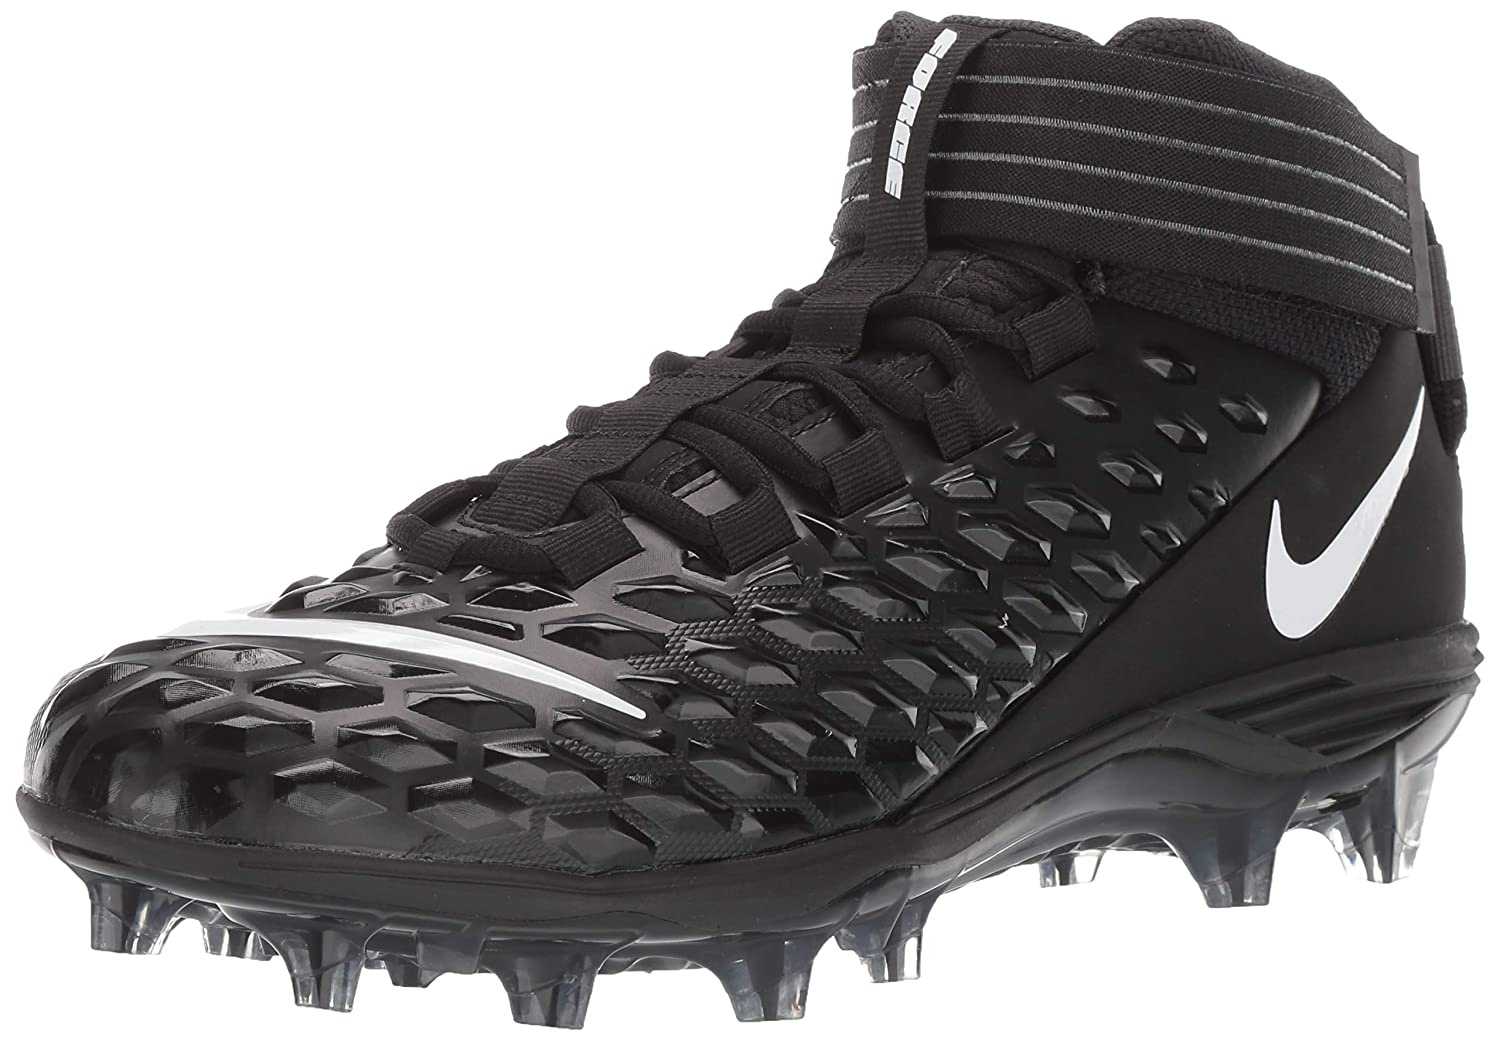 Nike Men's Force Savage Pro 2 Football Cleat 黒/白い/Anthracite Size 10.5 M US